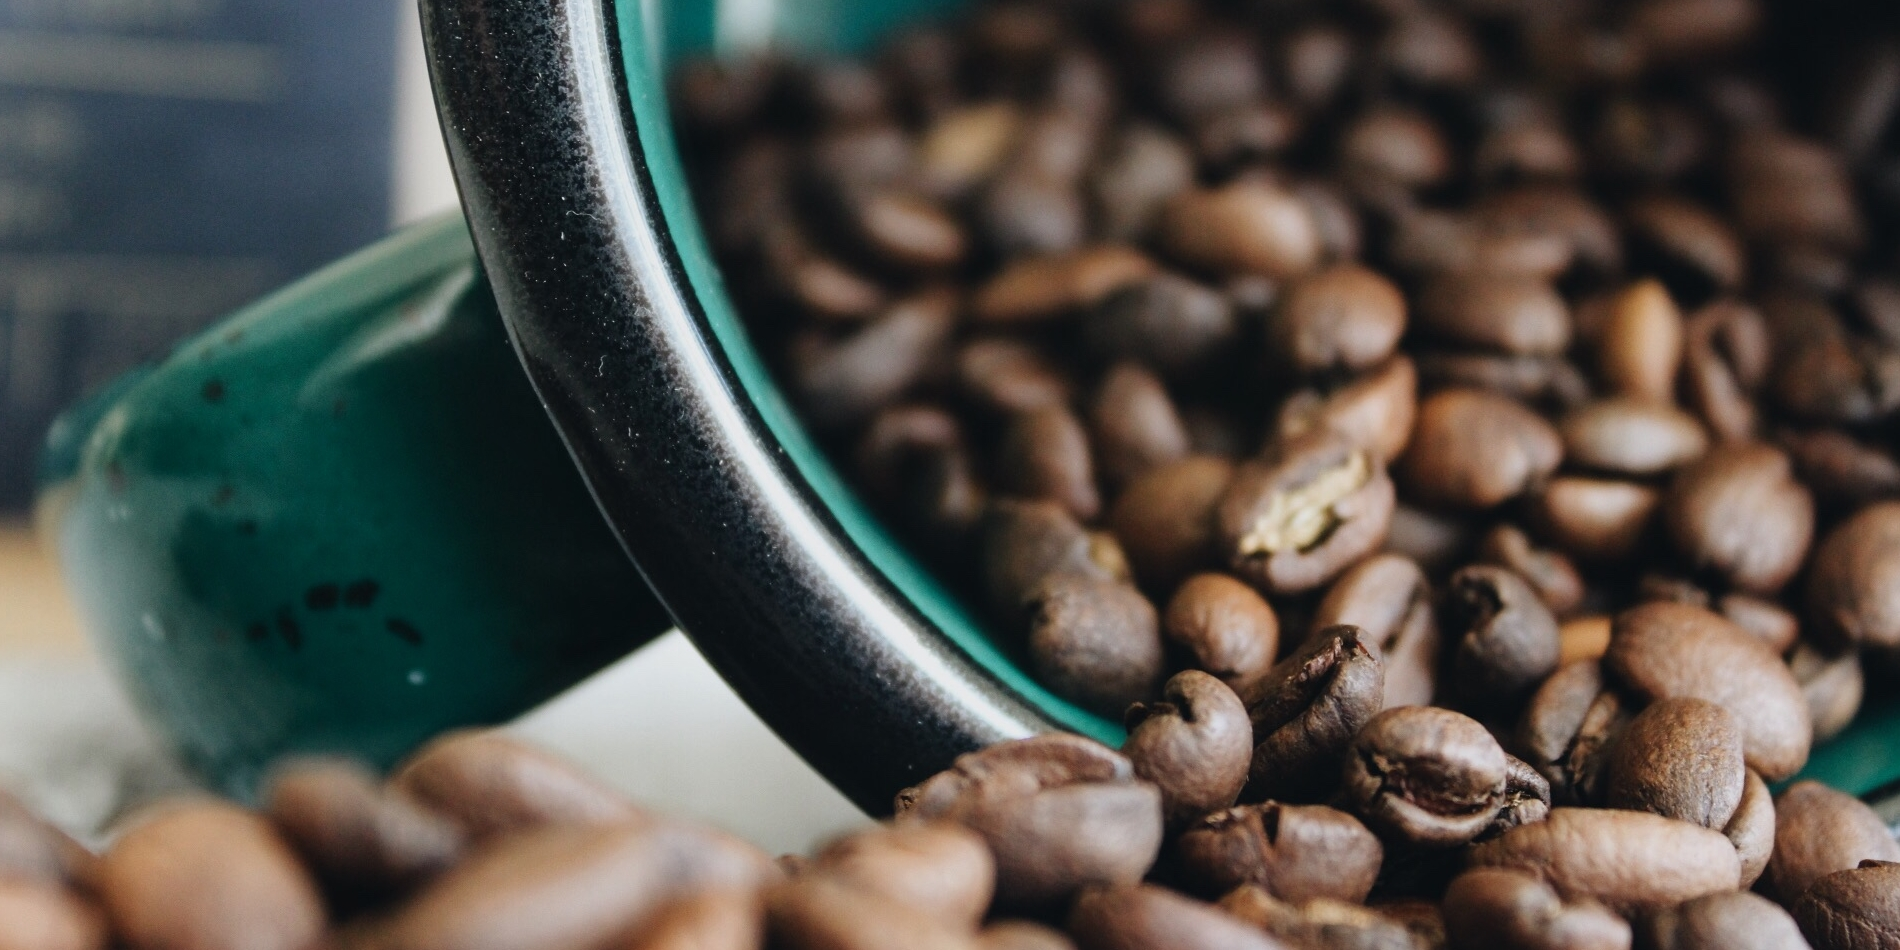 Ethically Sourced - Every coffee we offer is a direct trade product. This means that your purchase is supporting families and small businesses with fair wages all across the globe.